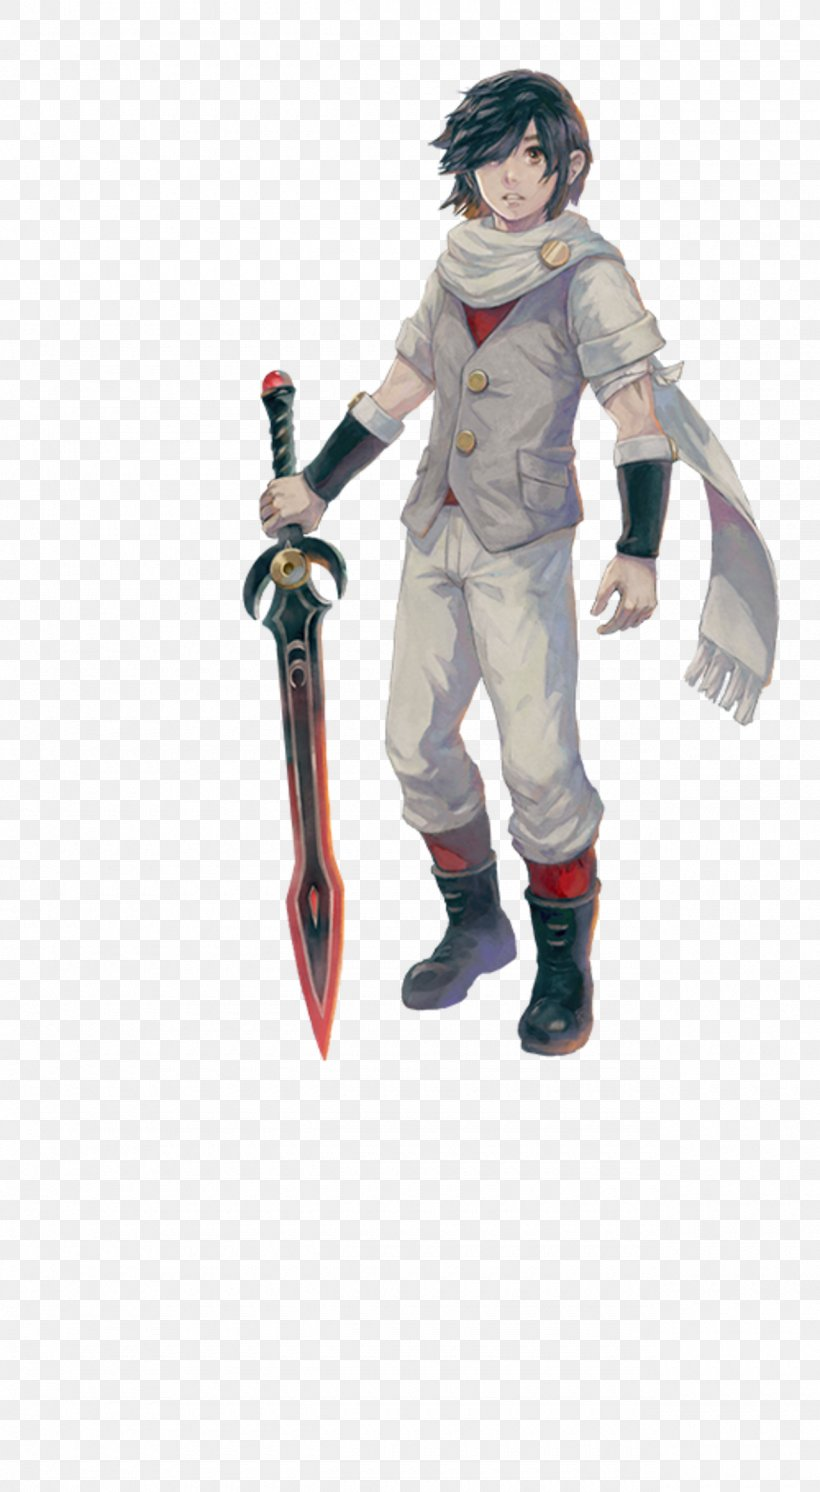 Lost Sphear I Am Setsuna PlayStation 4 Chrono Trigger PAX, PNG, 1280x2330px, Lost Sphear, Action Figure, Chrono Trigger, Costume, Fictional Character Download Free